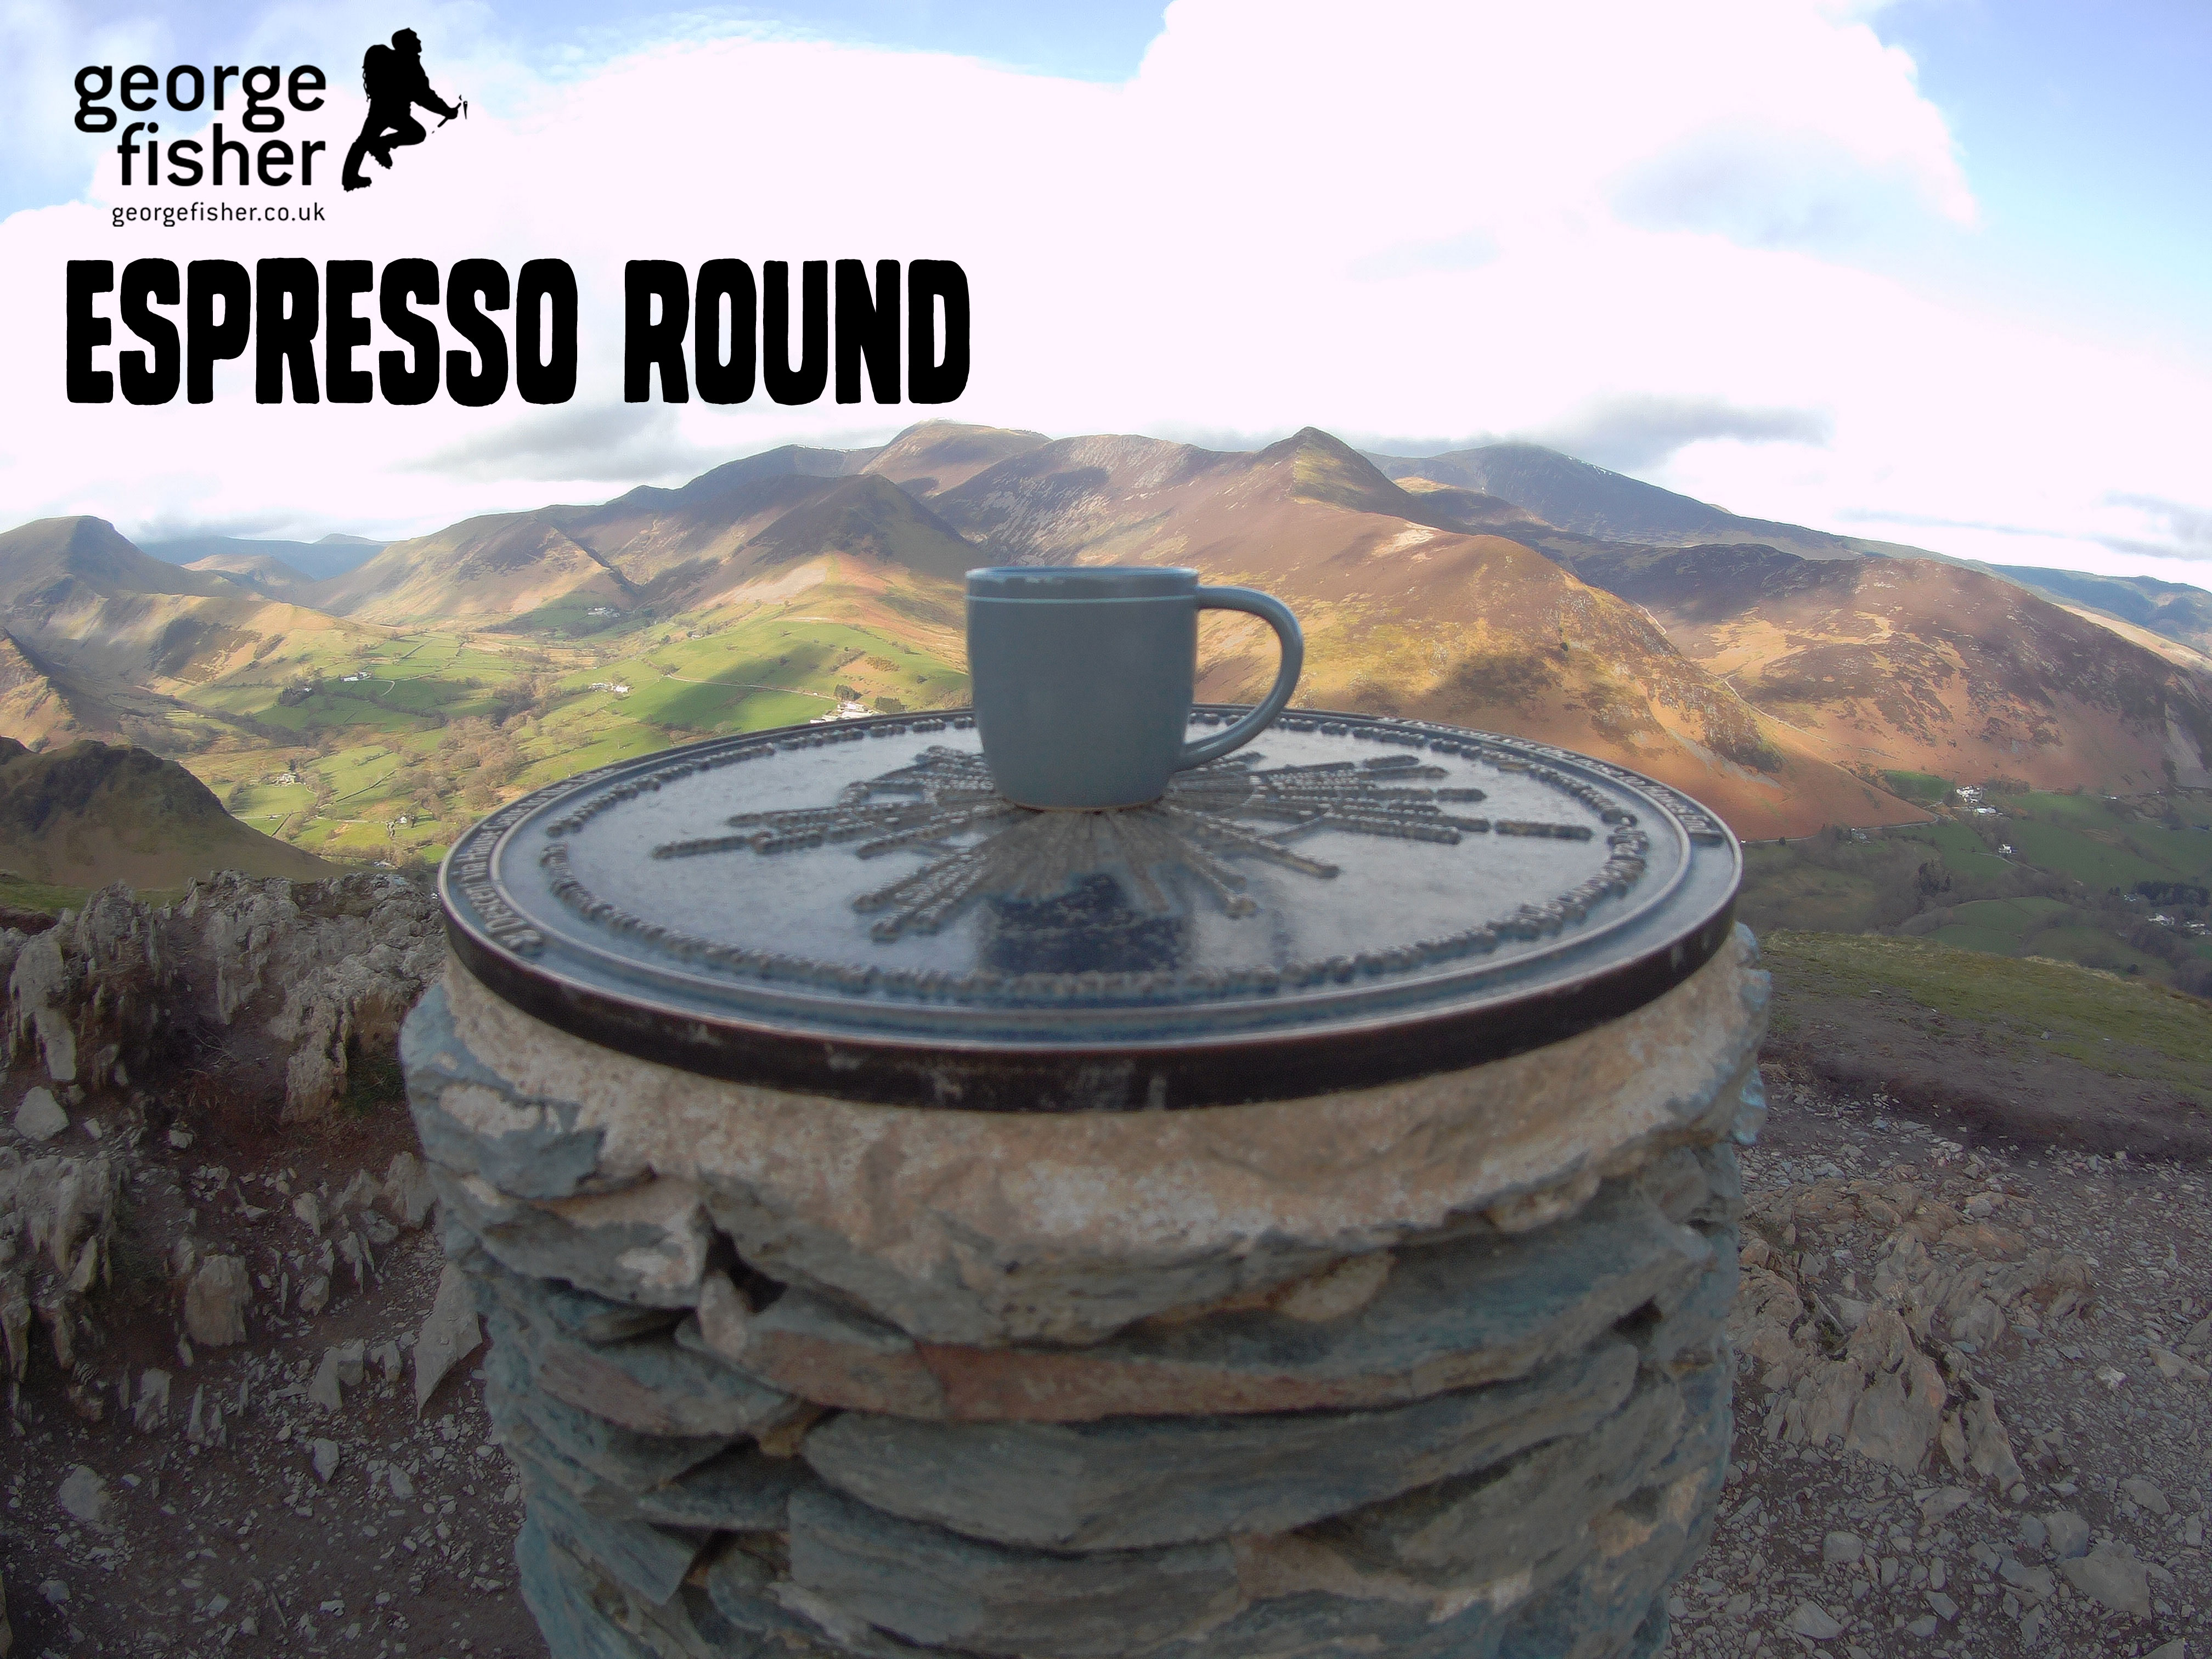 Image for article George Fisher Espresso Round